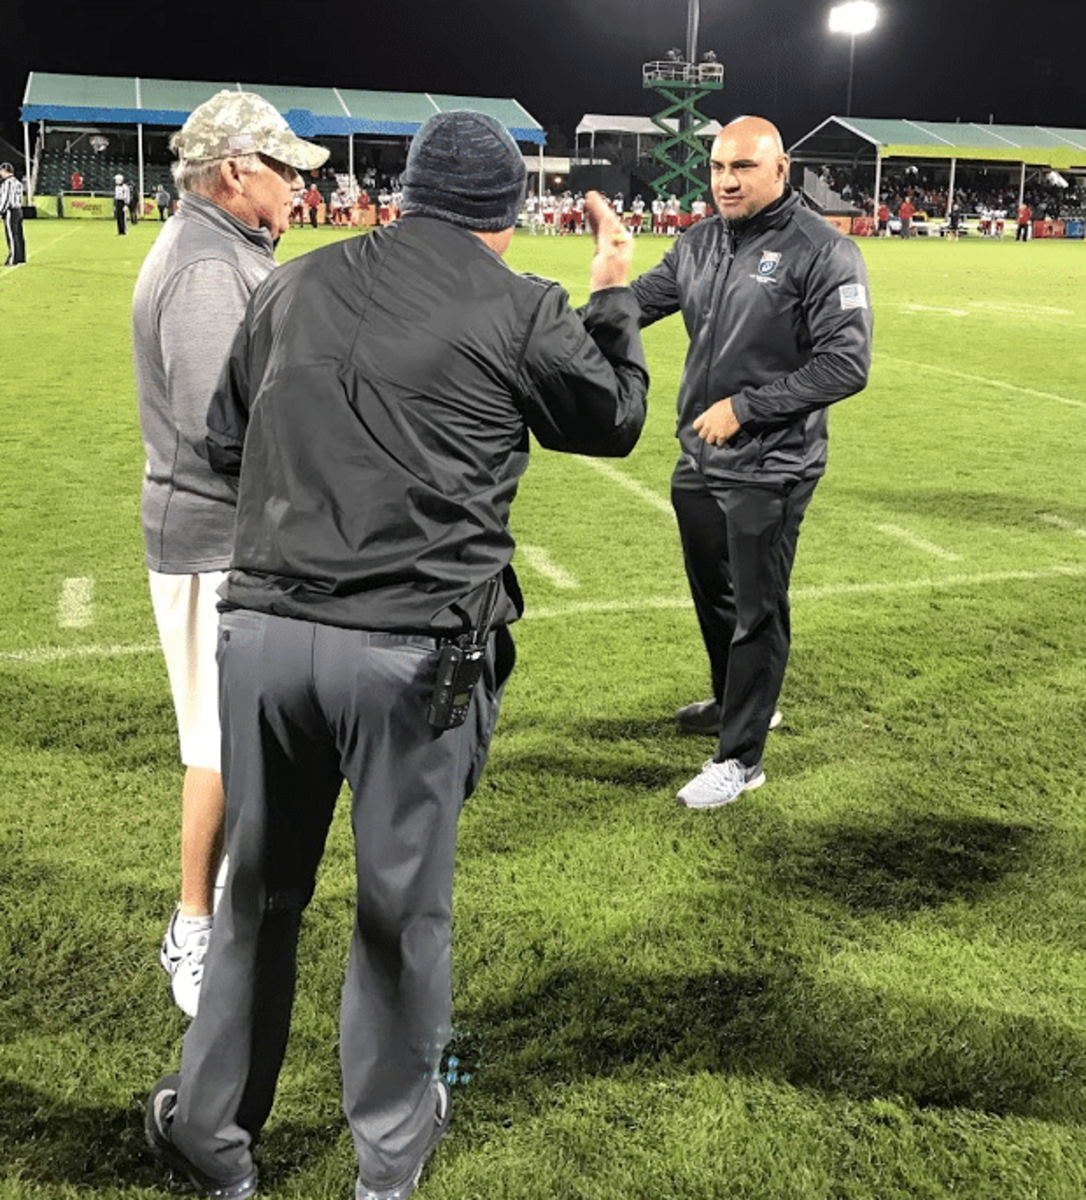 U-19 National head coach Kenny Sanchez & USA FB National Teams director Aaron Ingram engaging on the sidelines during USA's win over Canada